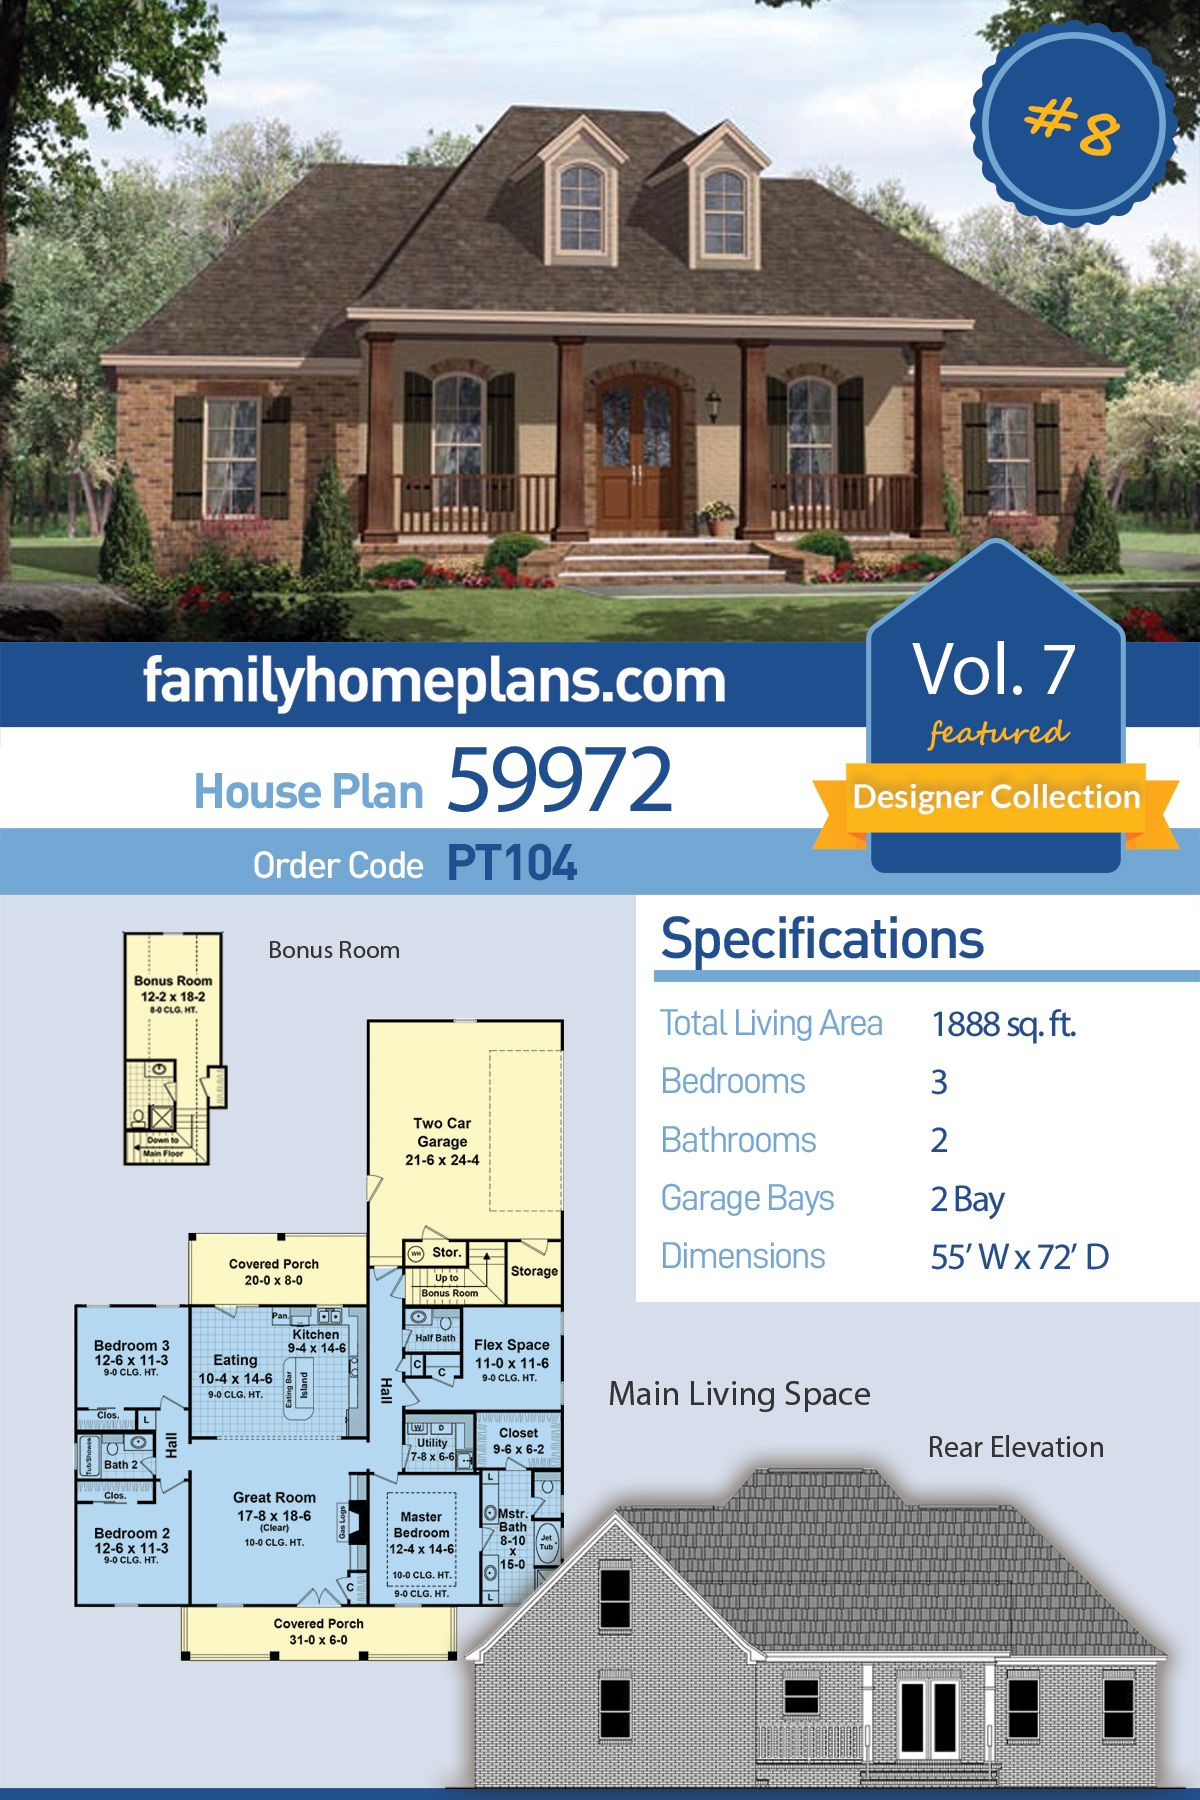 Traditional Style House Plan 59972 With 3 Bed 2 Bath 2 Car Garage Acadian House Plans House Plans Country House Plans